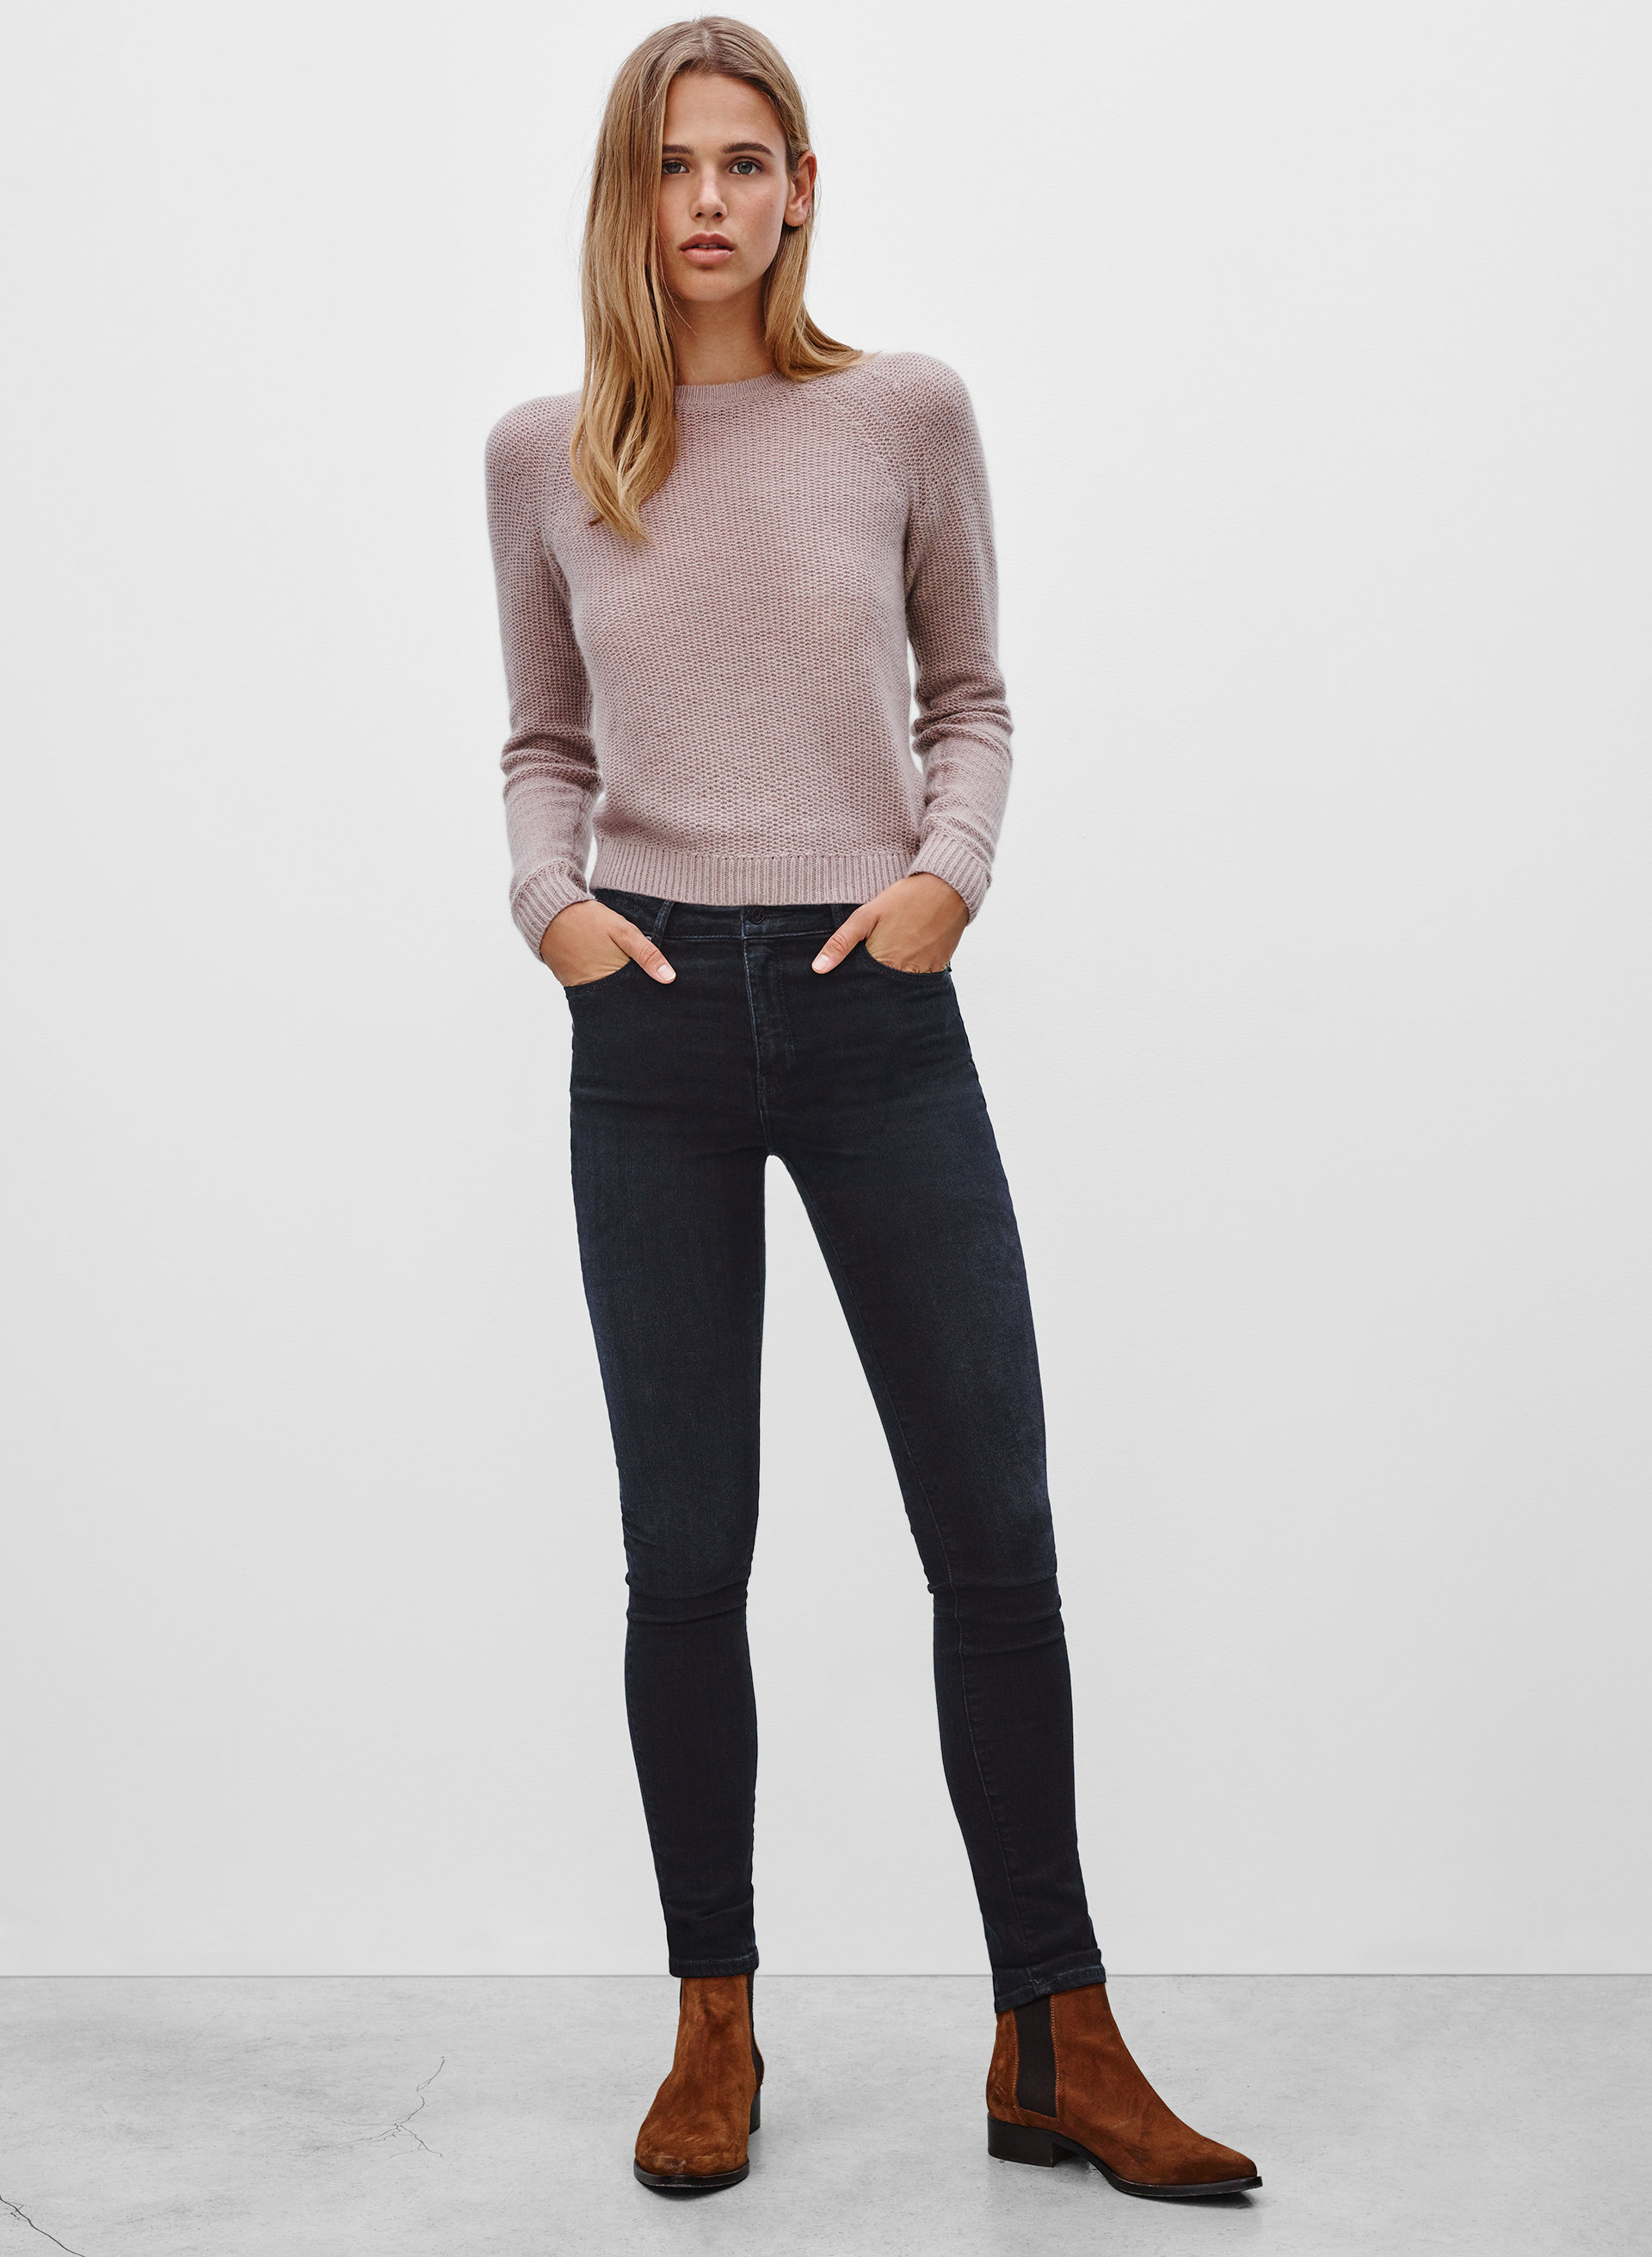 What are some clothing products that Aritzia sells?